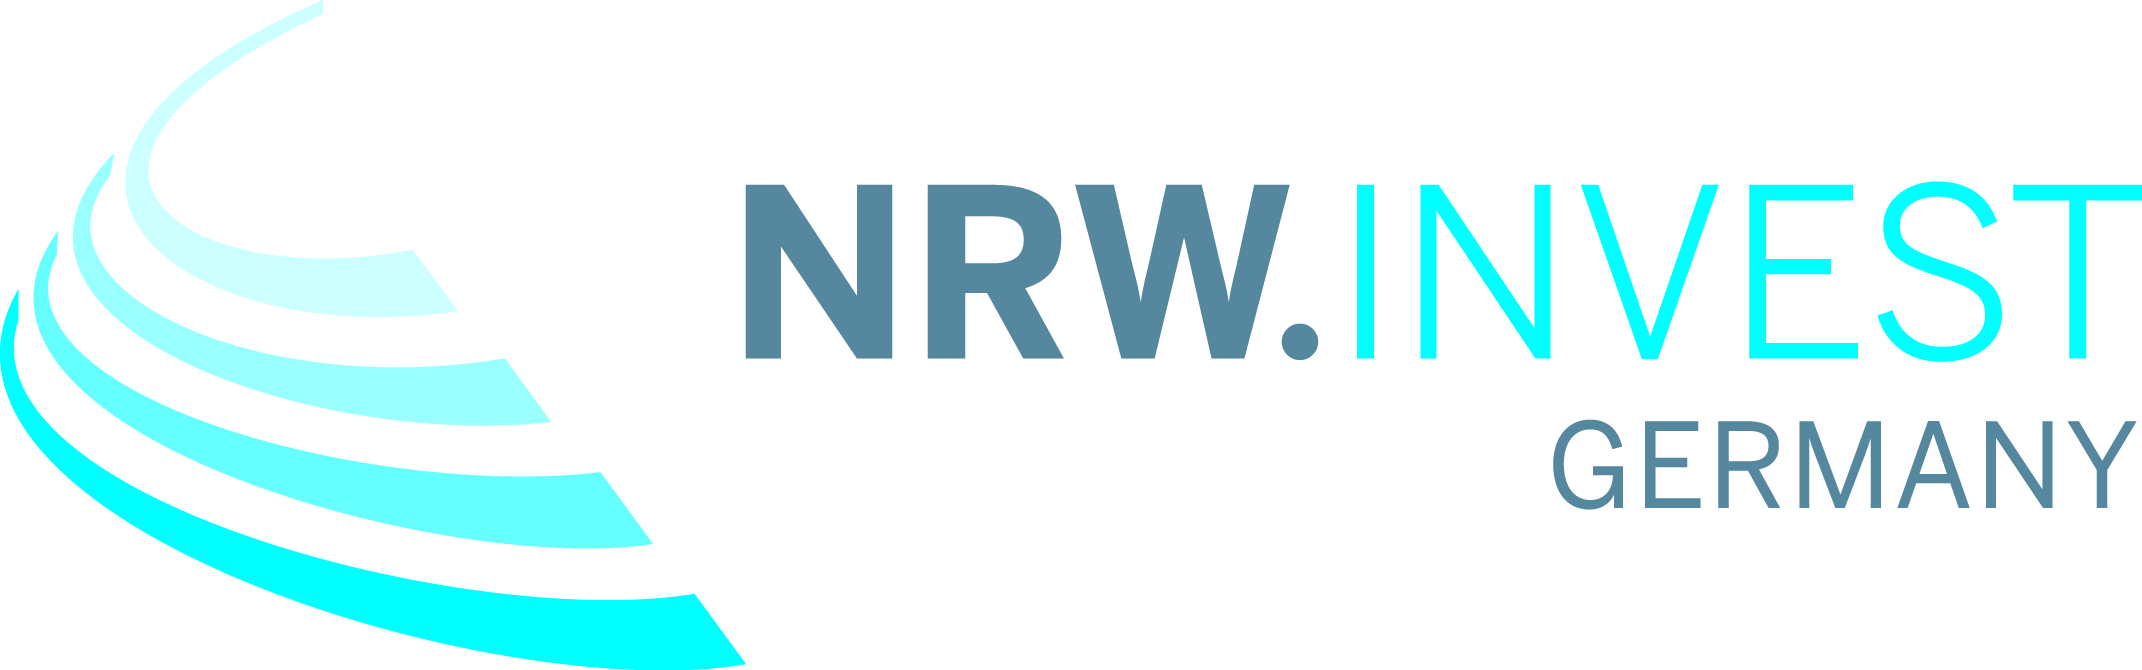 NRW.INVEST Germany